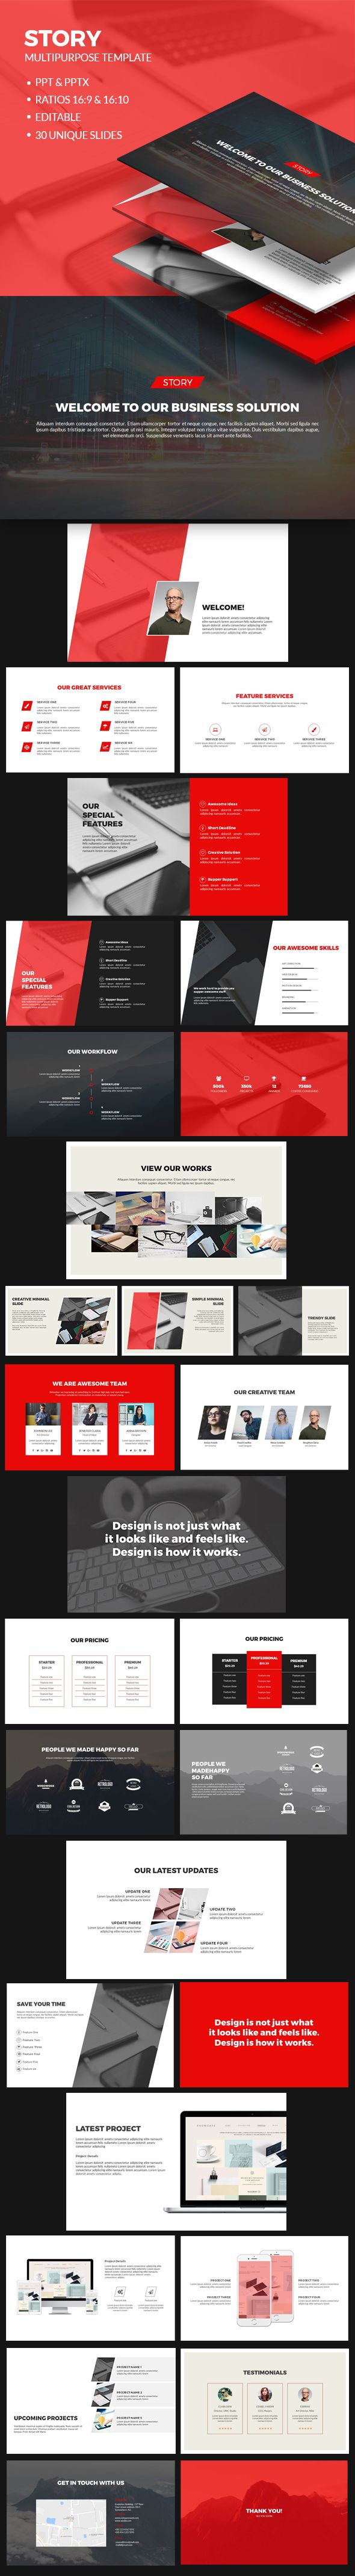 Clean PowerPoint Presentation TemplateV02 — Powerpoint PPT #ppt #powerpoint • Download ➝ https://graphicriver.net/item/clean-powerpoint-presentation-templatev02/18812397?ref=pxcr